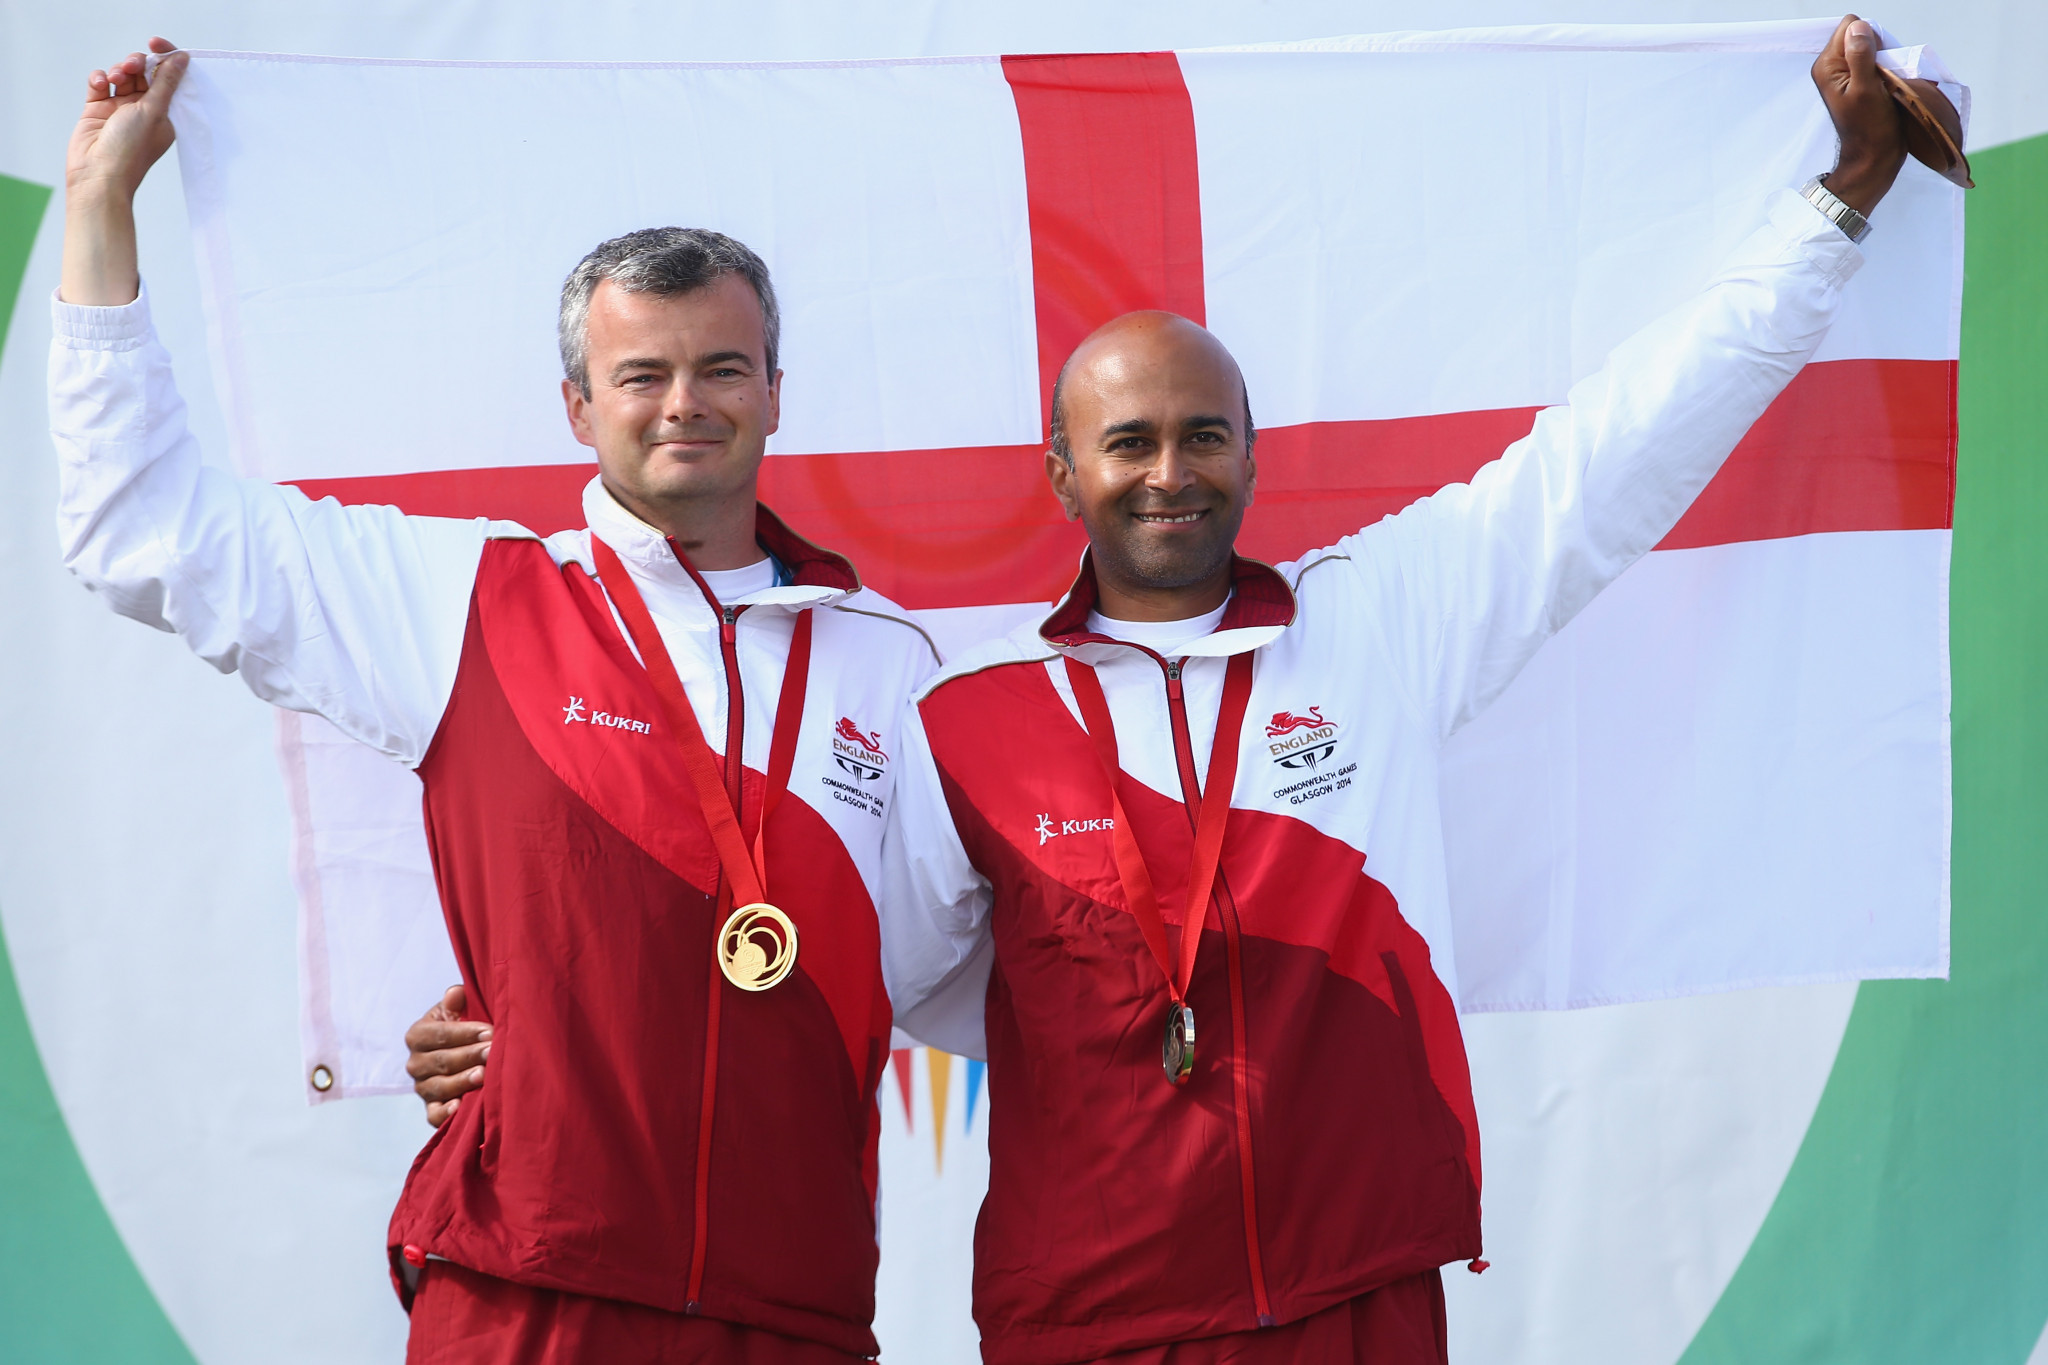 England's Parag Patel and David Luckman won the Queen's prize pairs event ©Getty Images